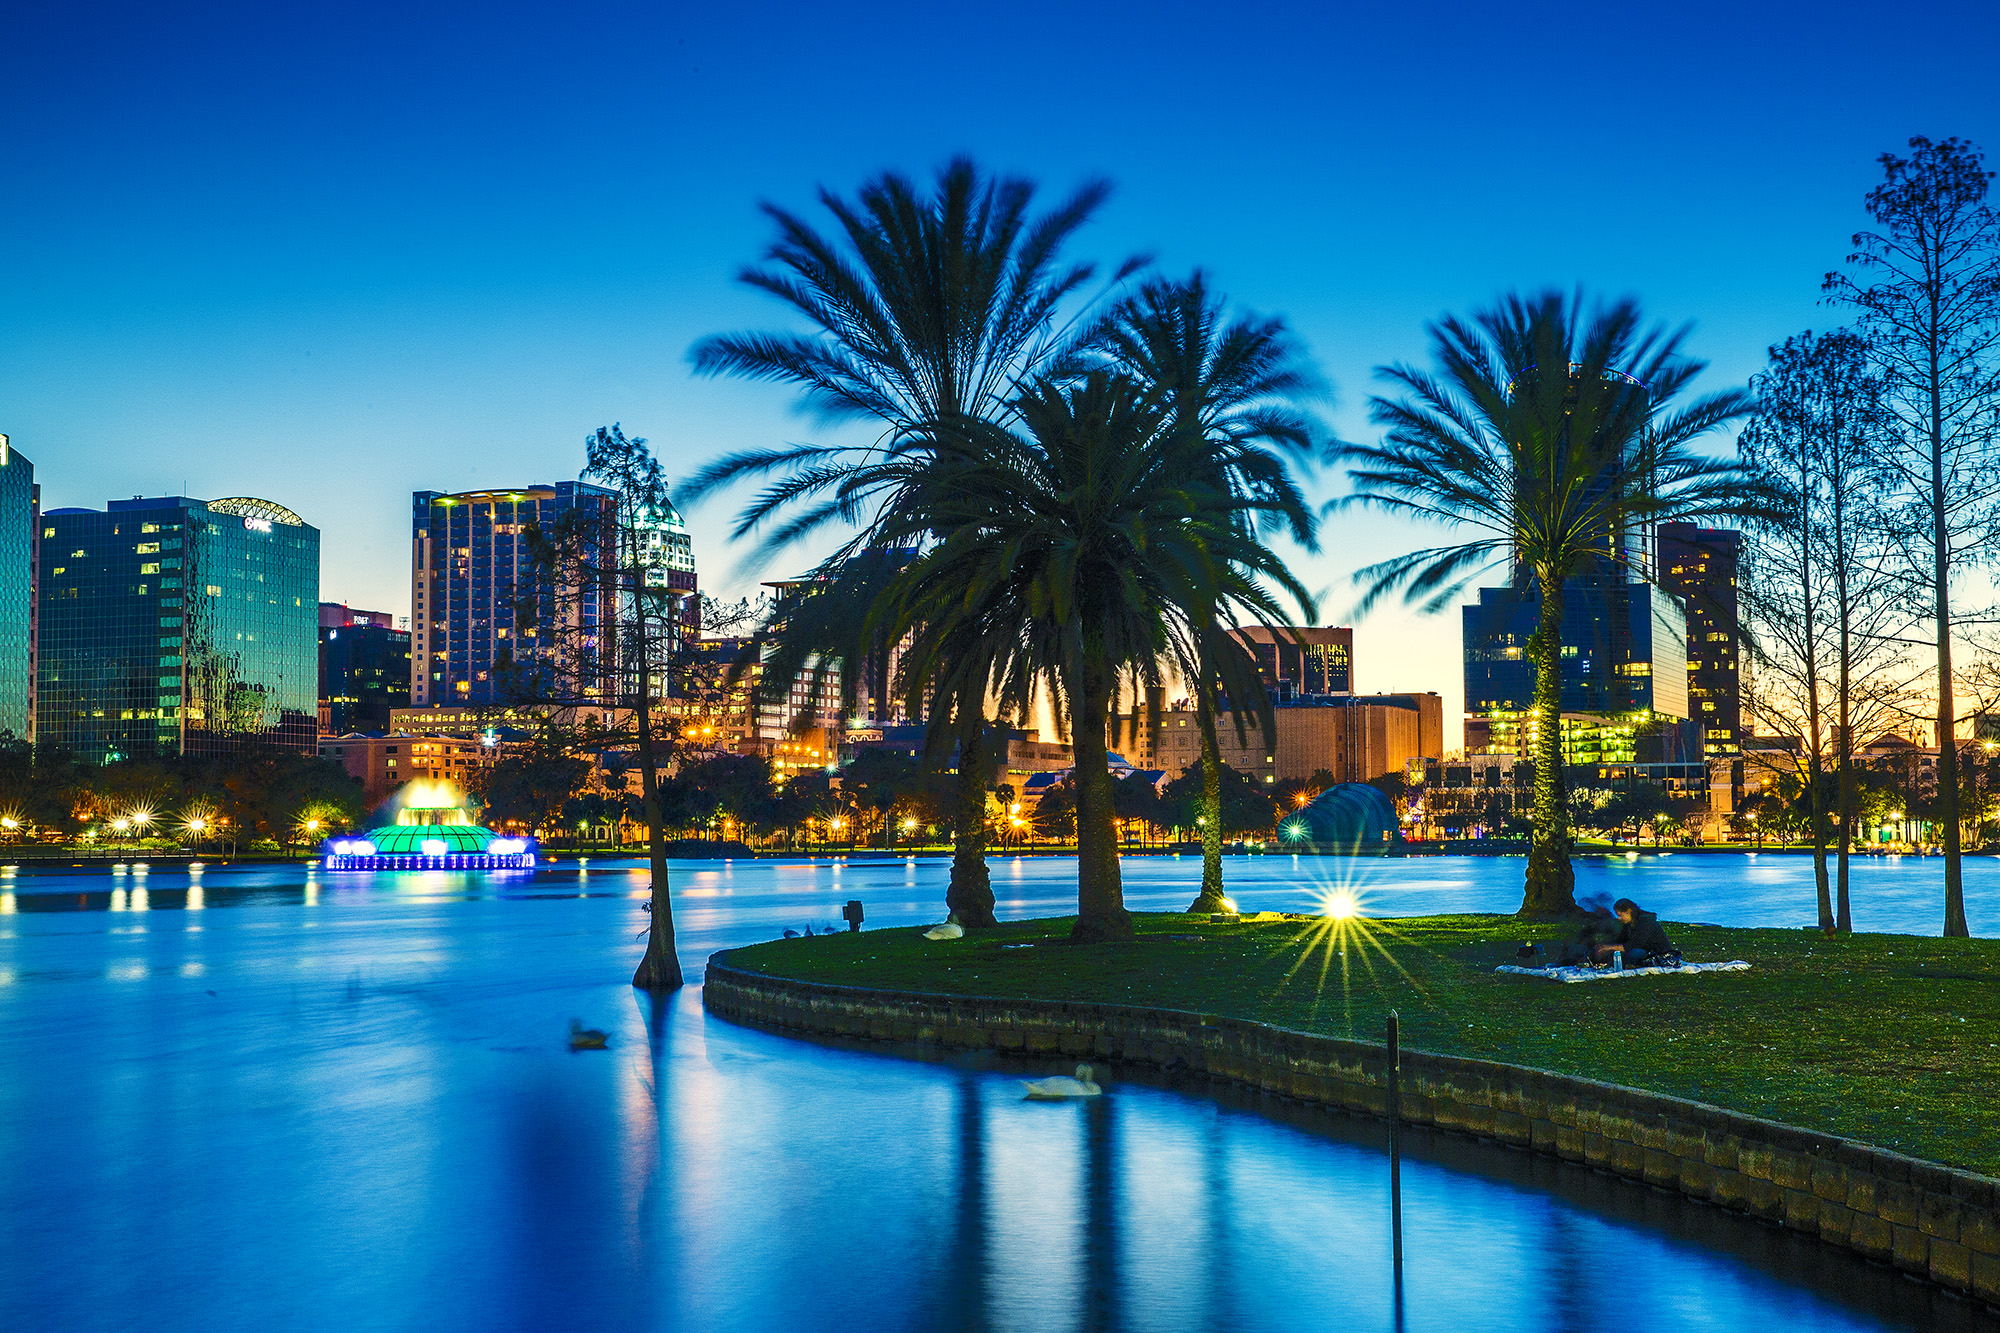 Orlando Airport Shuttle Airport Transportation to Orlando International Airport (MCO) GO Mears, the official shuttle concessionaire at Orlando International Airport, offers affordable Orlando airport shuttles to and from Central Florida and all of its attractions.